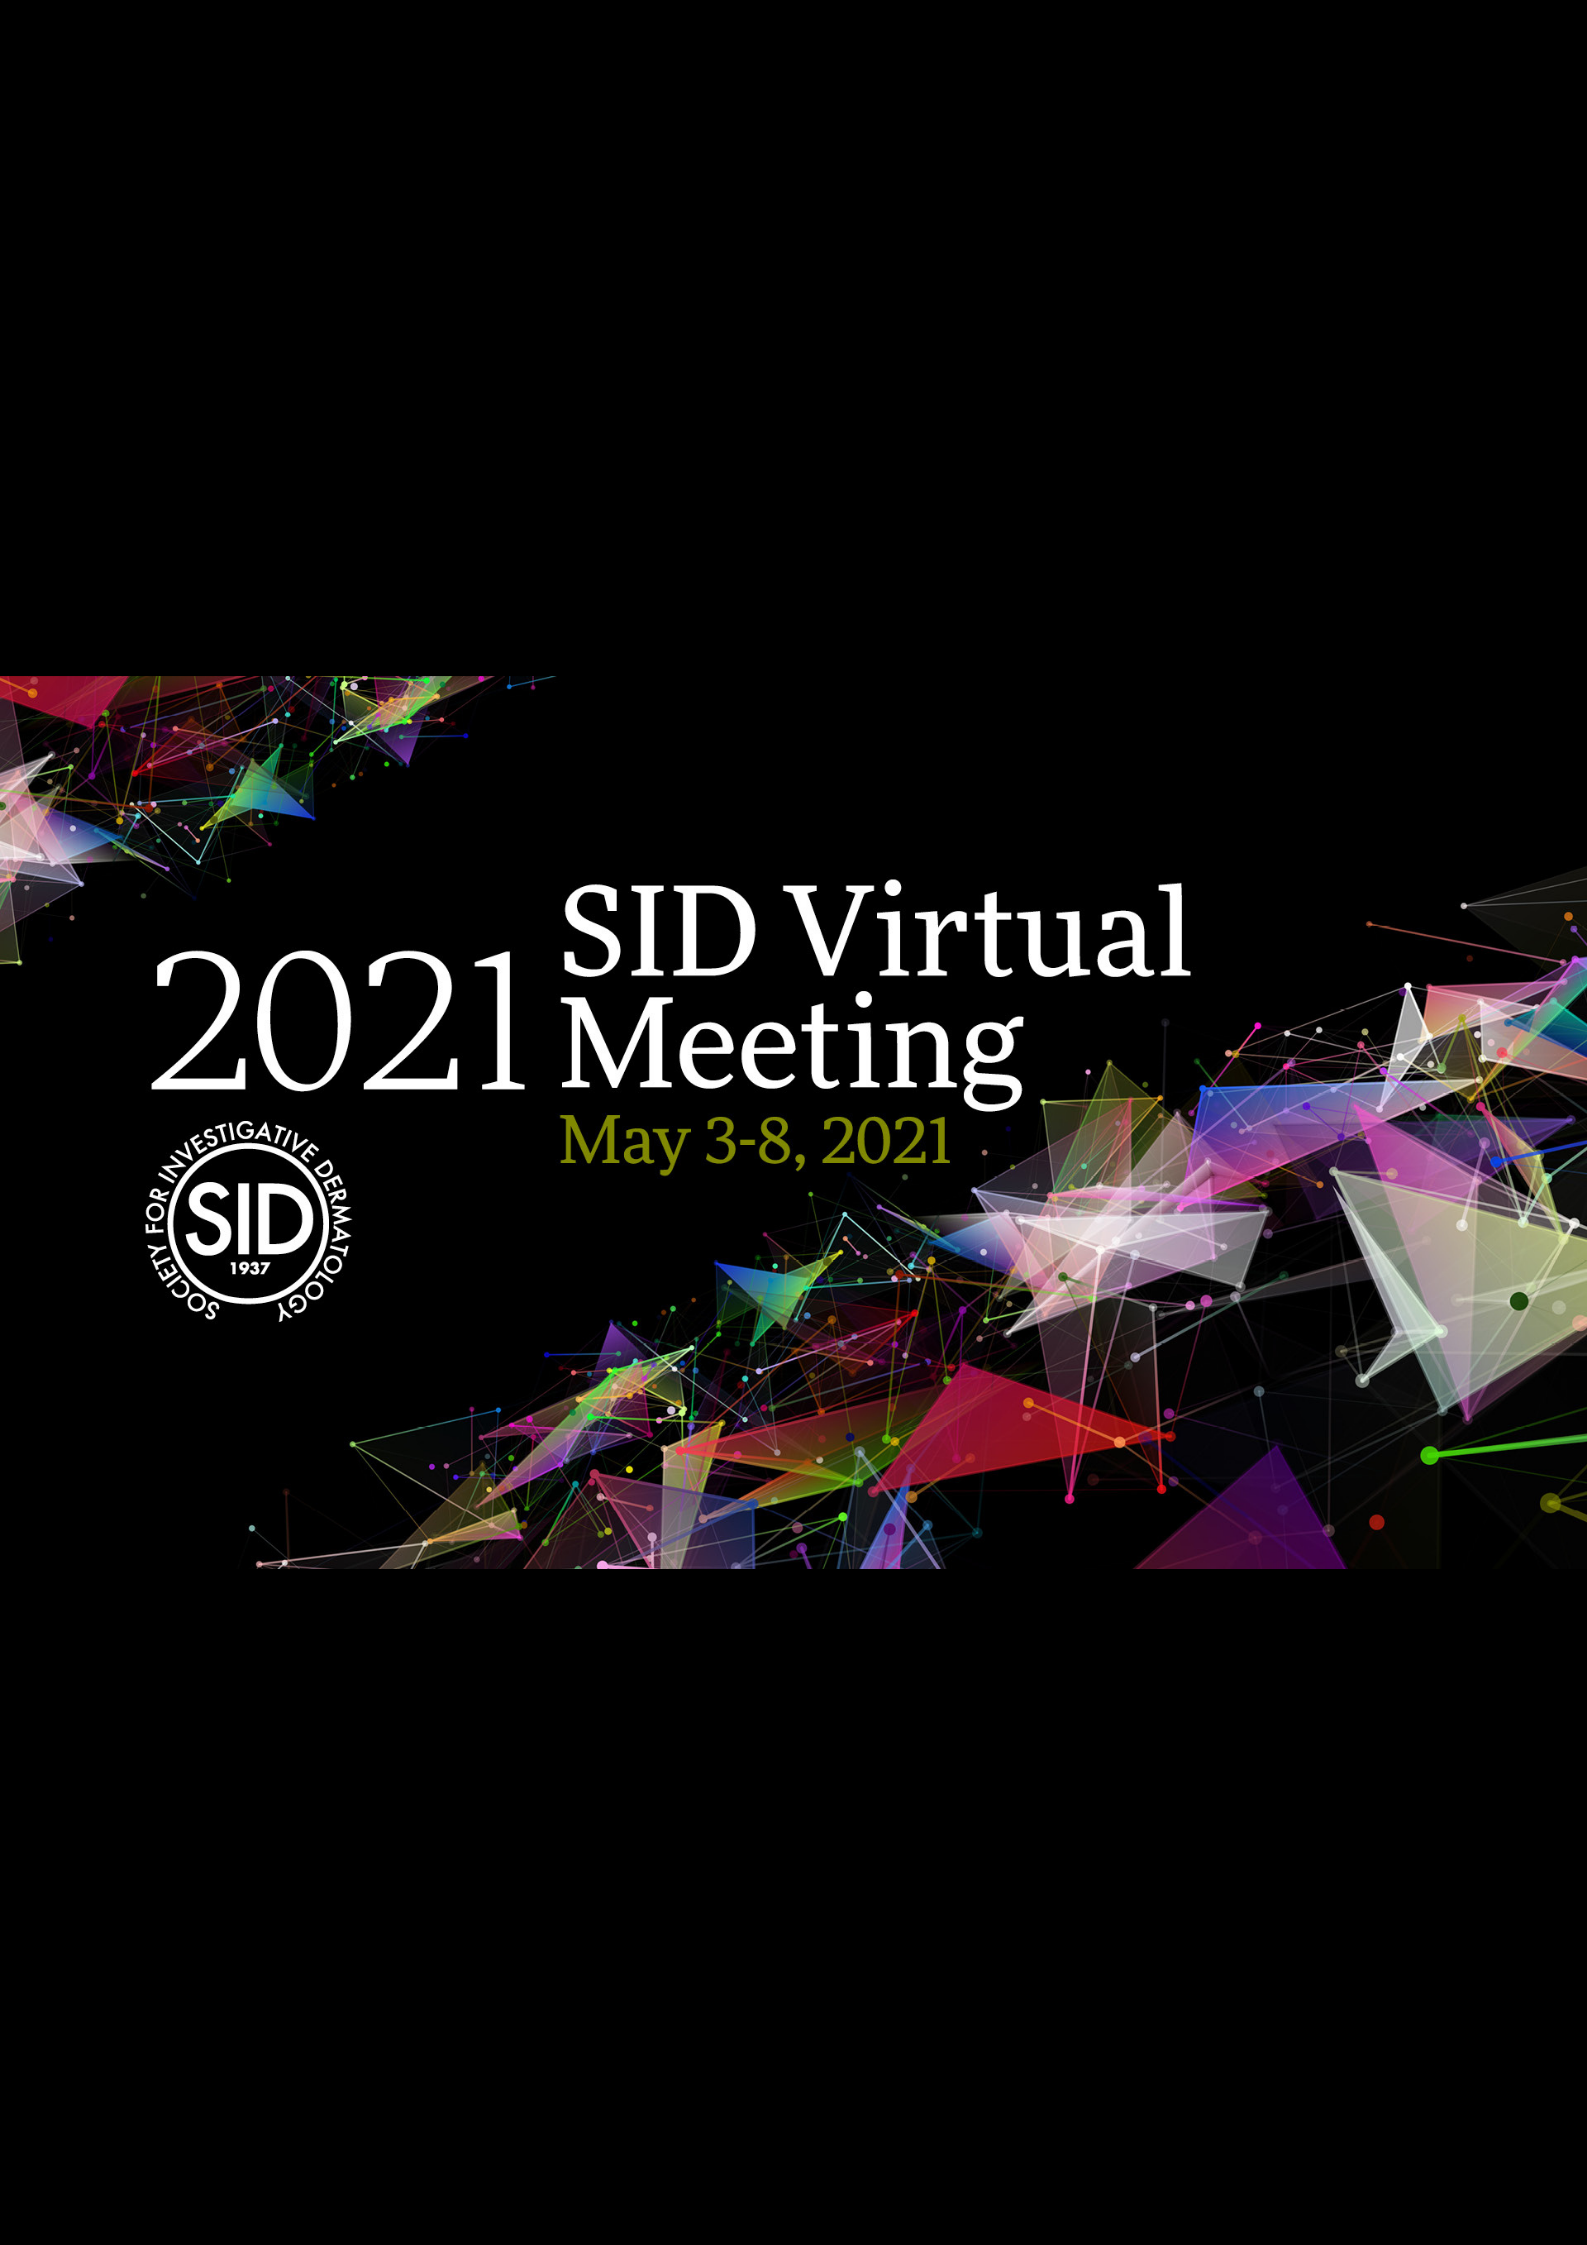 SID virtual meeting 2021